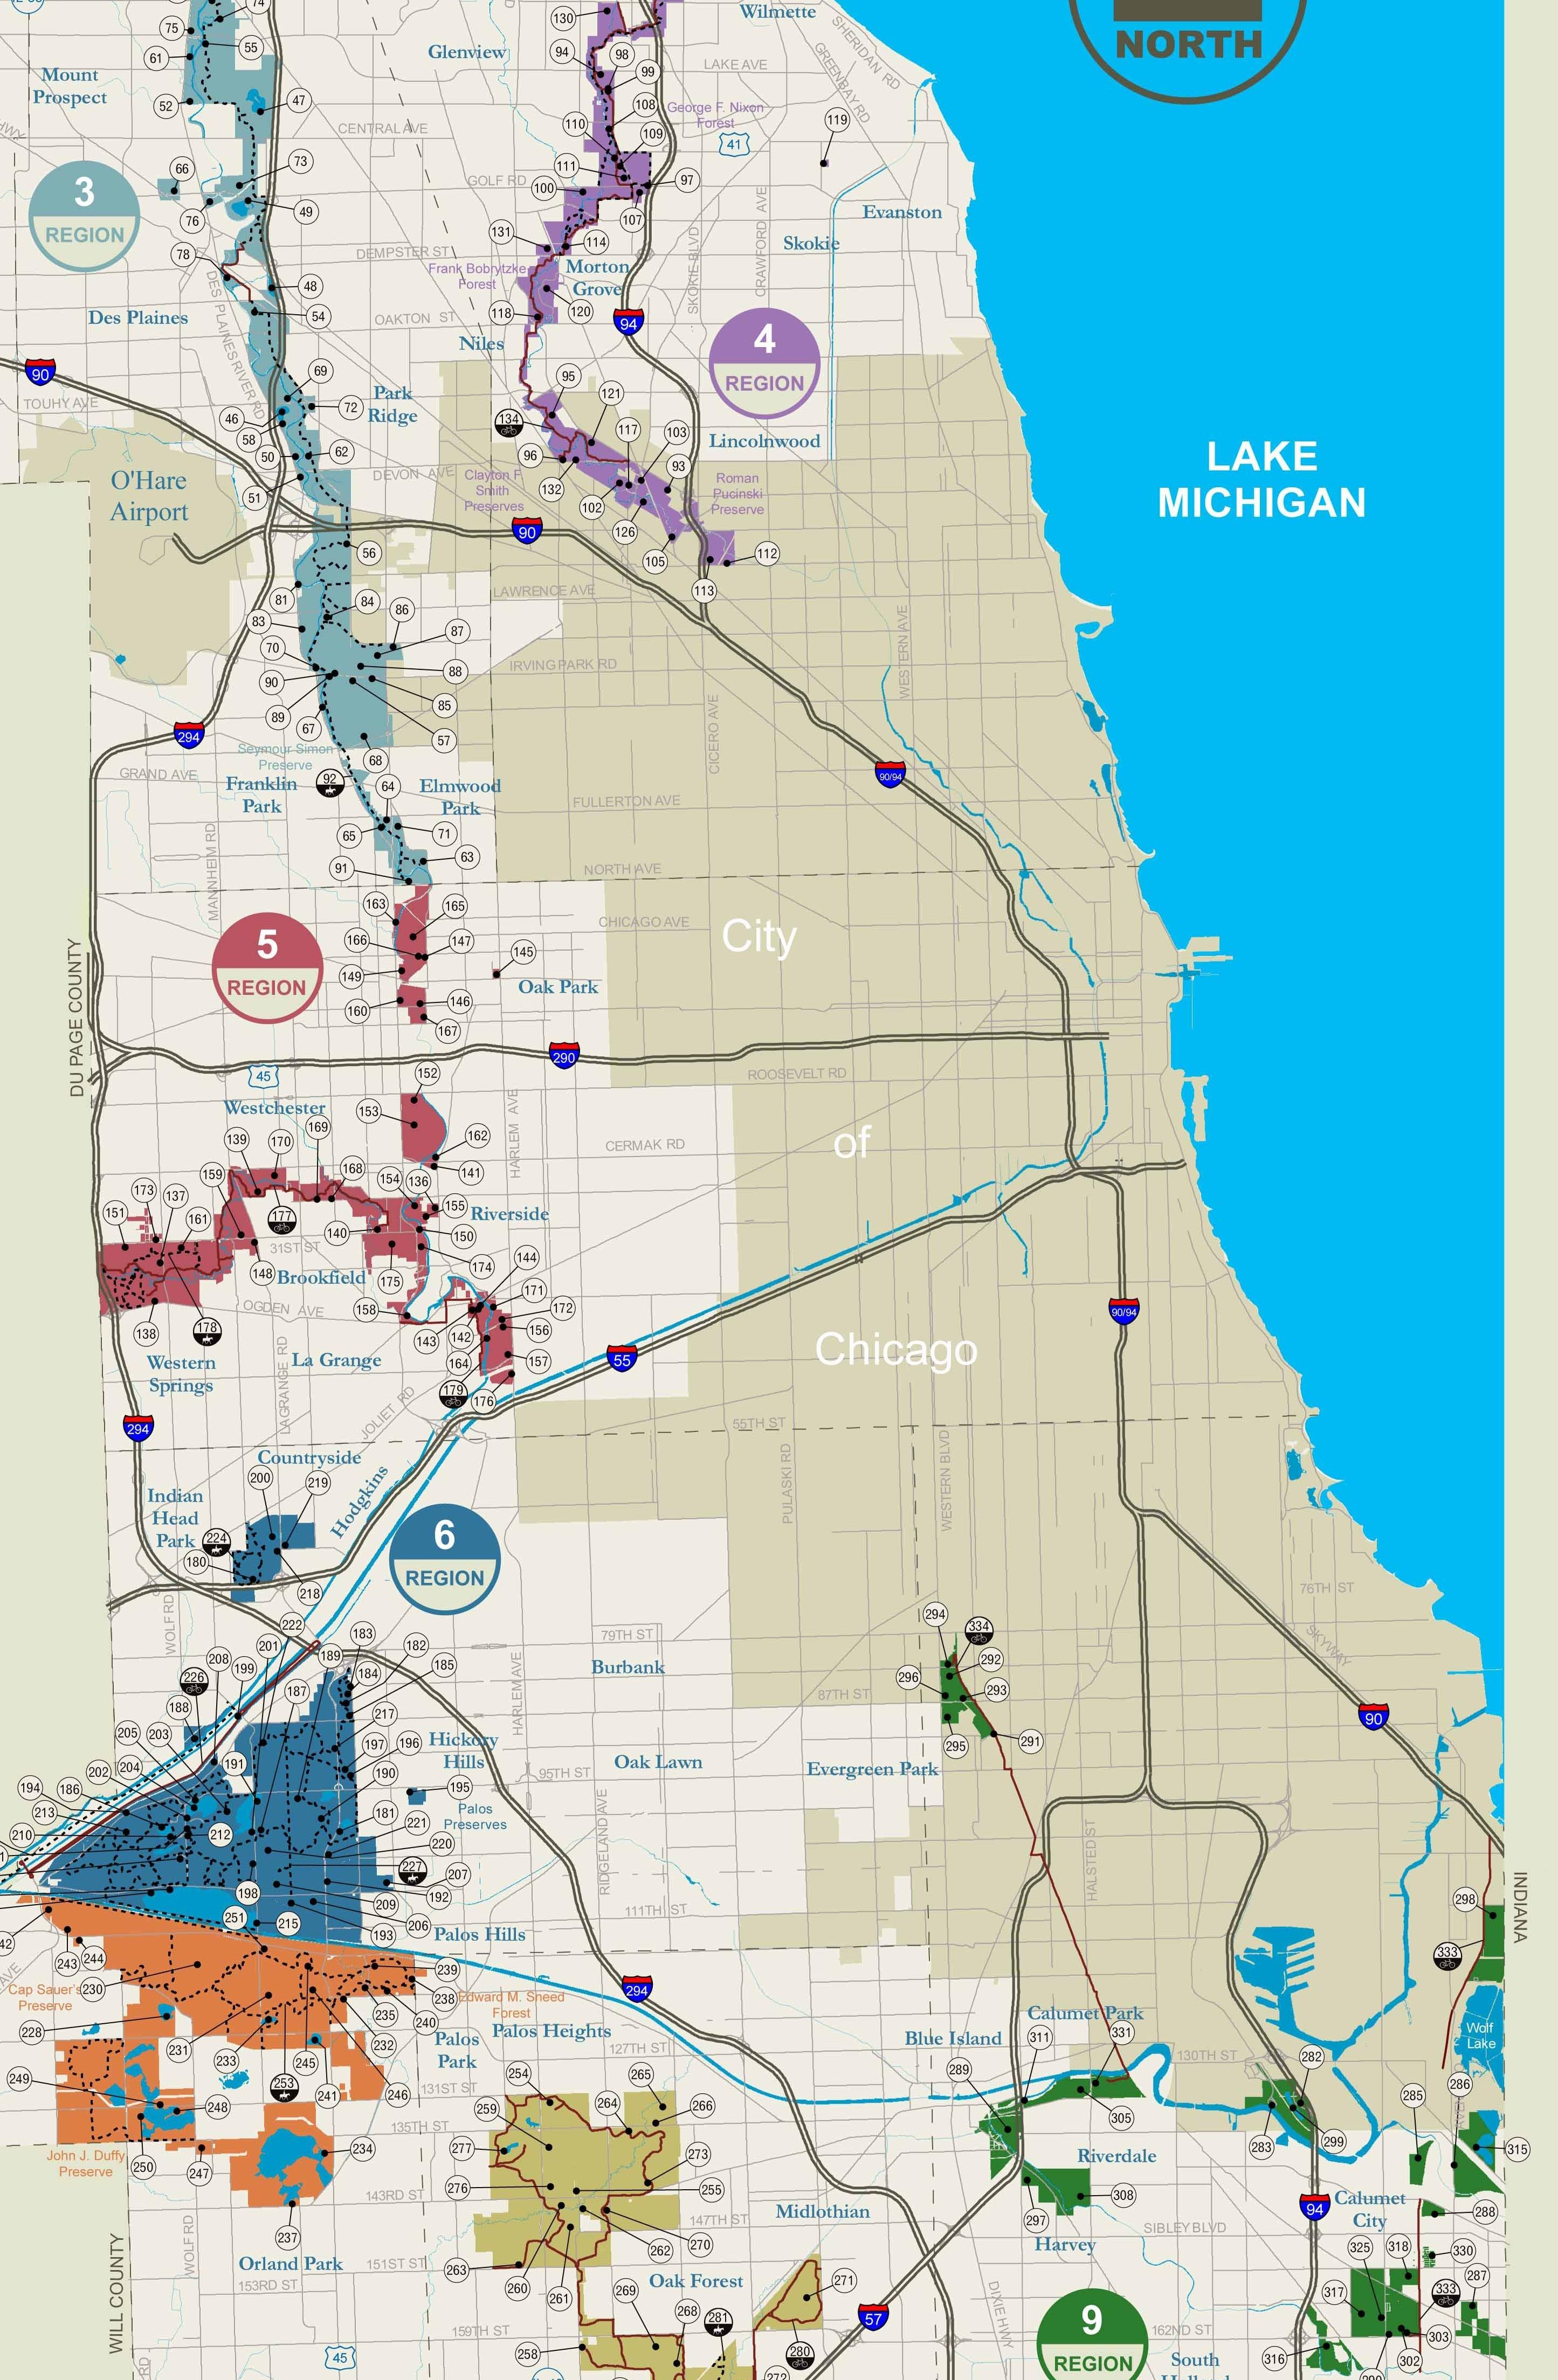 Chicago Forest Preserves Maps Graphs  Charts Pinterest - Chicago kayak map